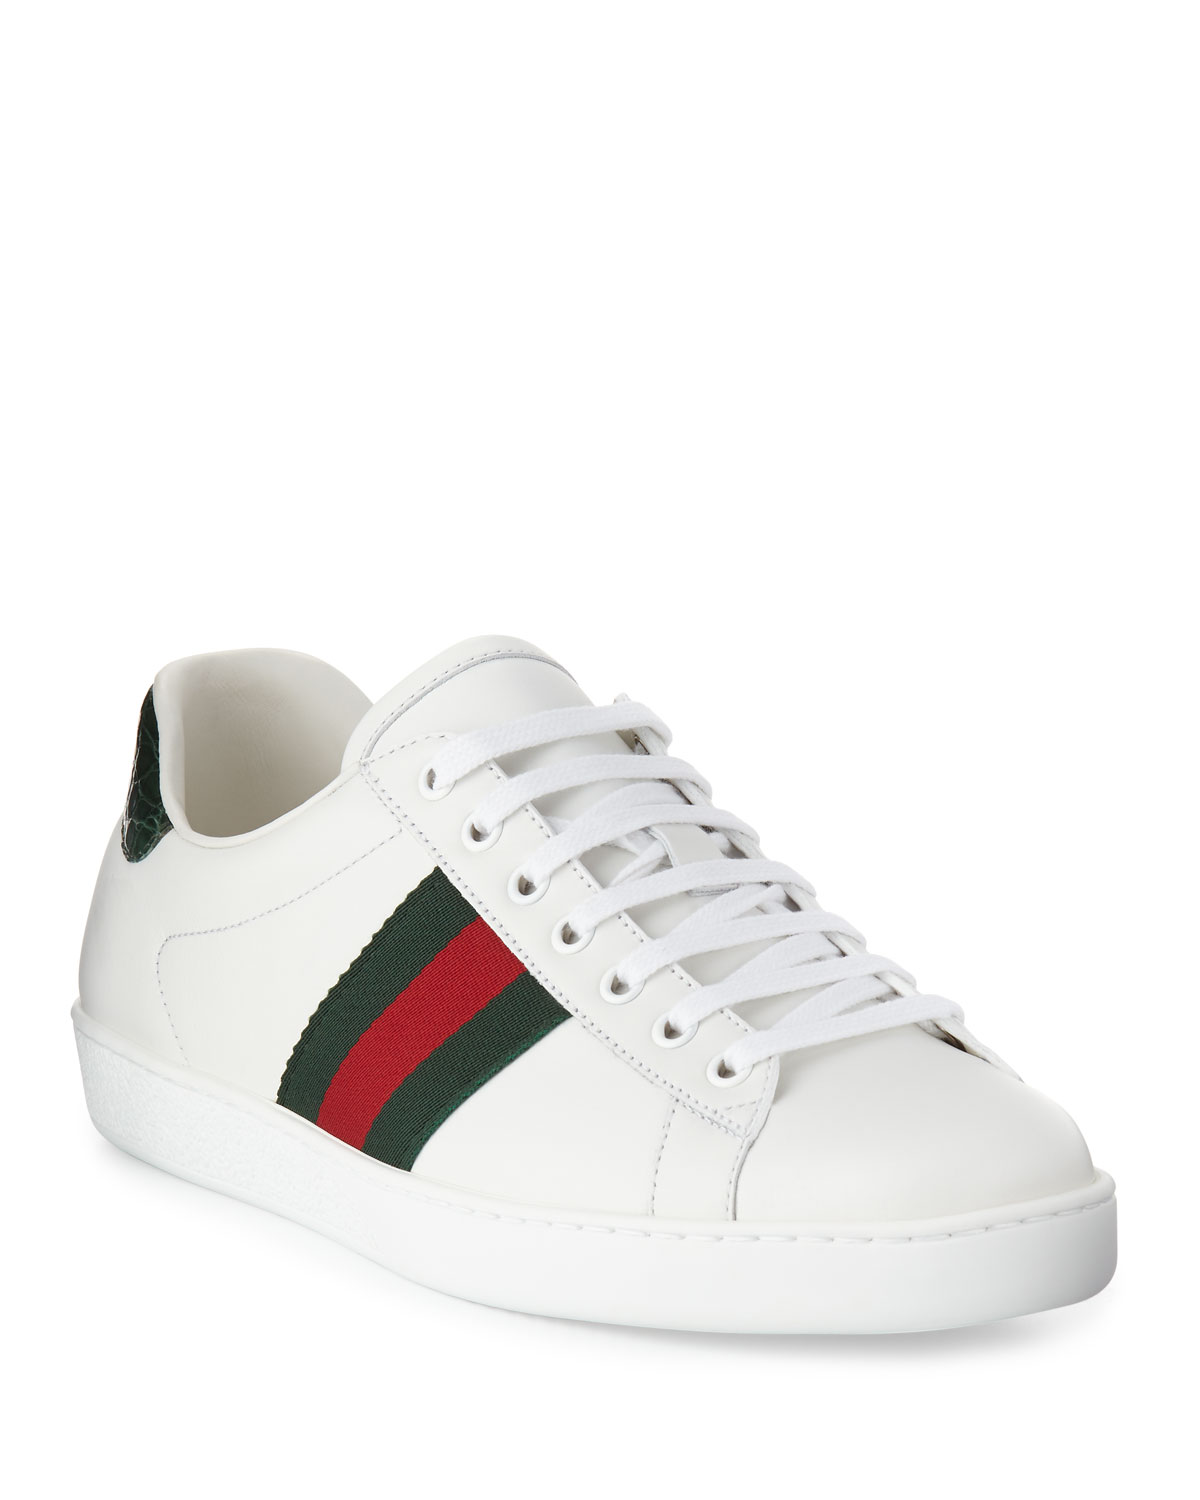 4fa1f6d7aba08f Gucci Men's New Ace Leather Low-Top Sneakers | Neiman Marcus